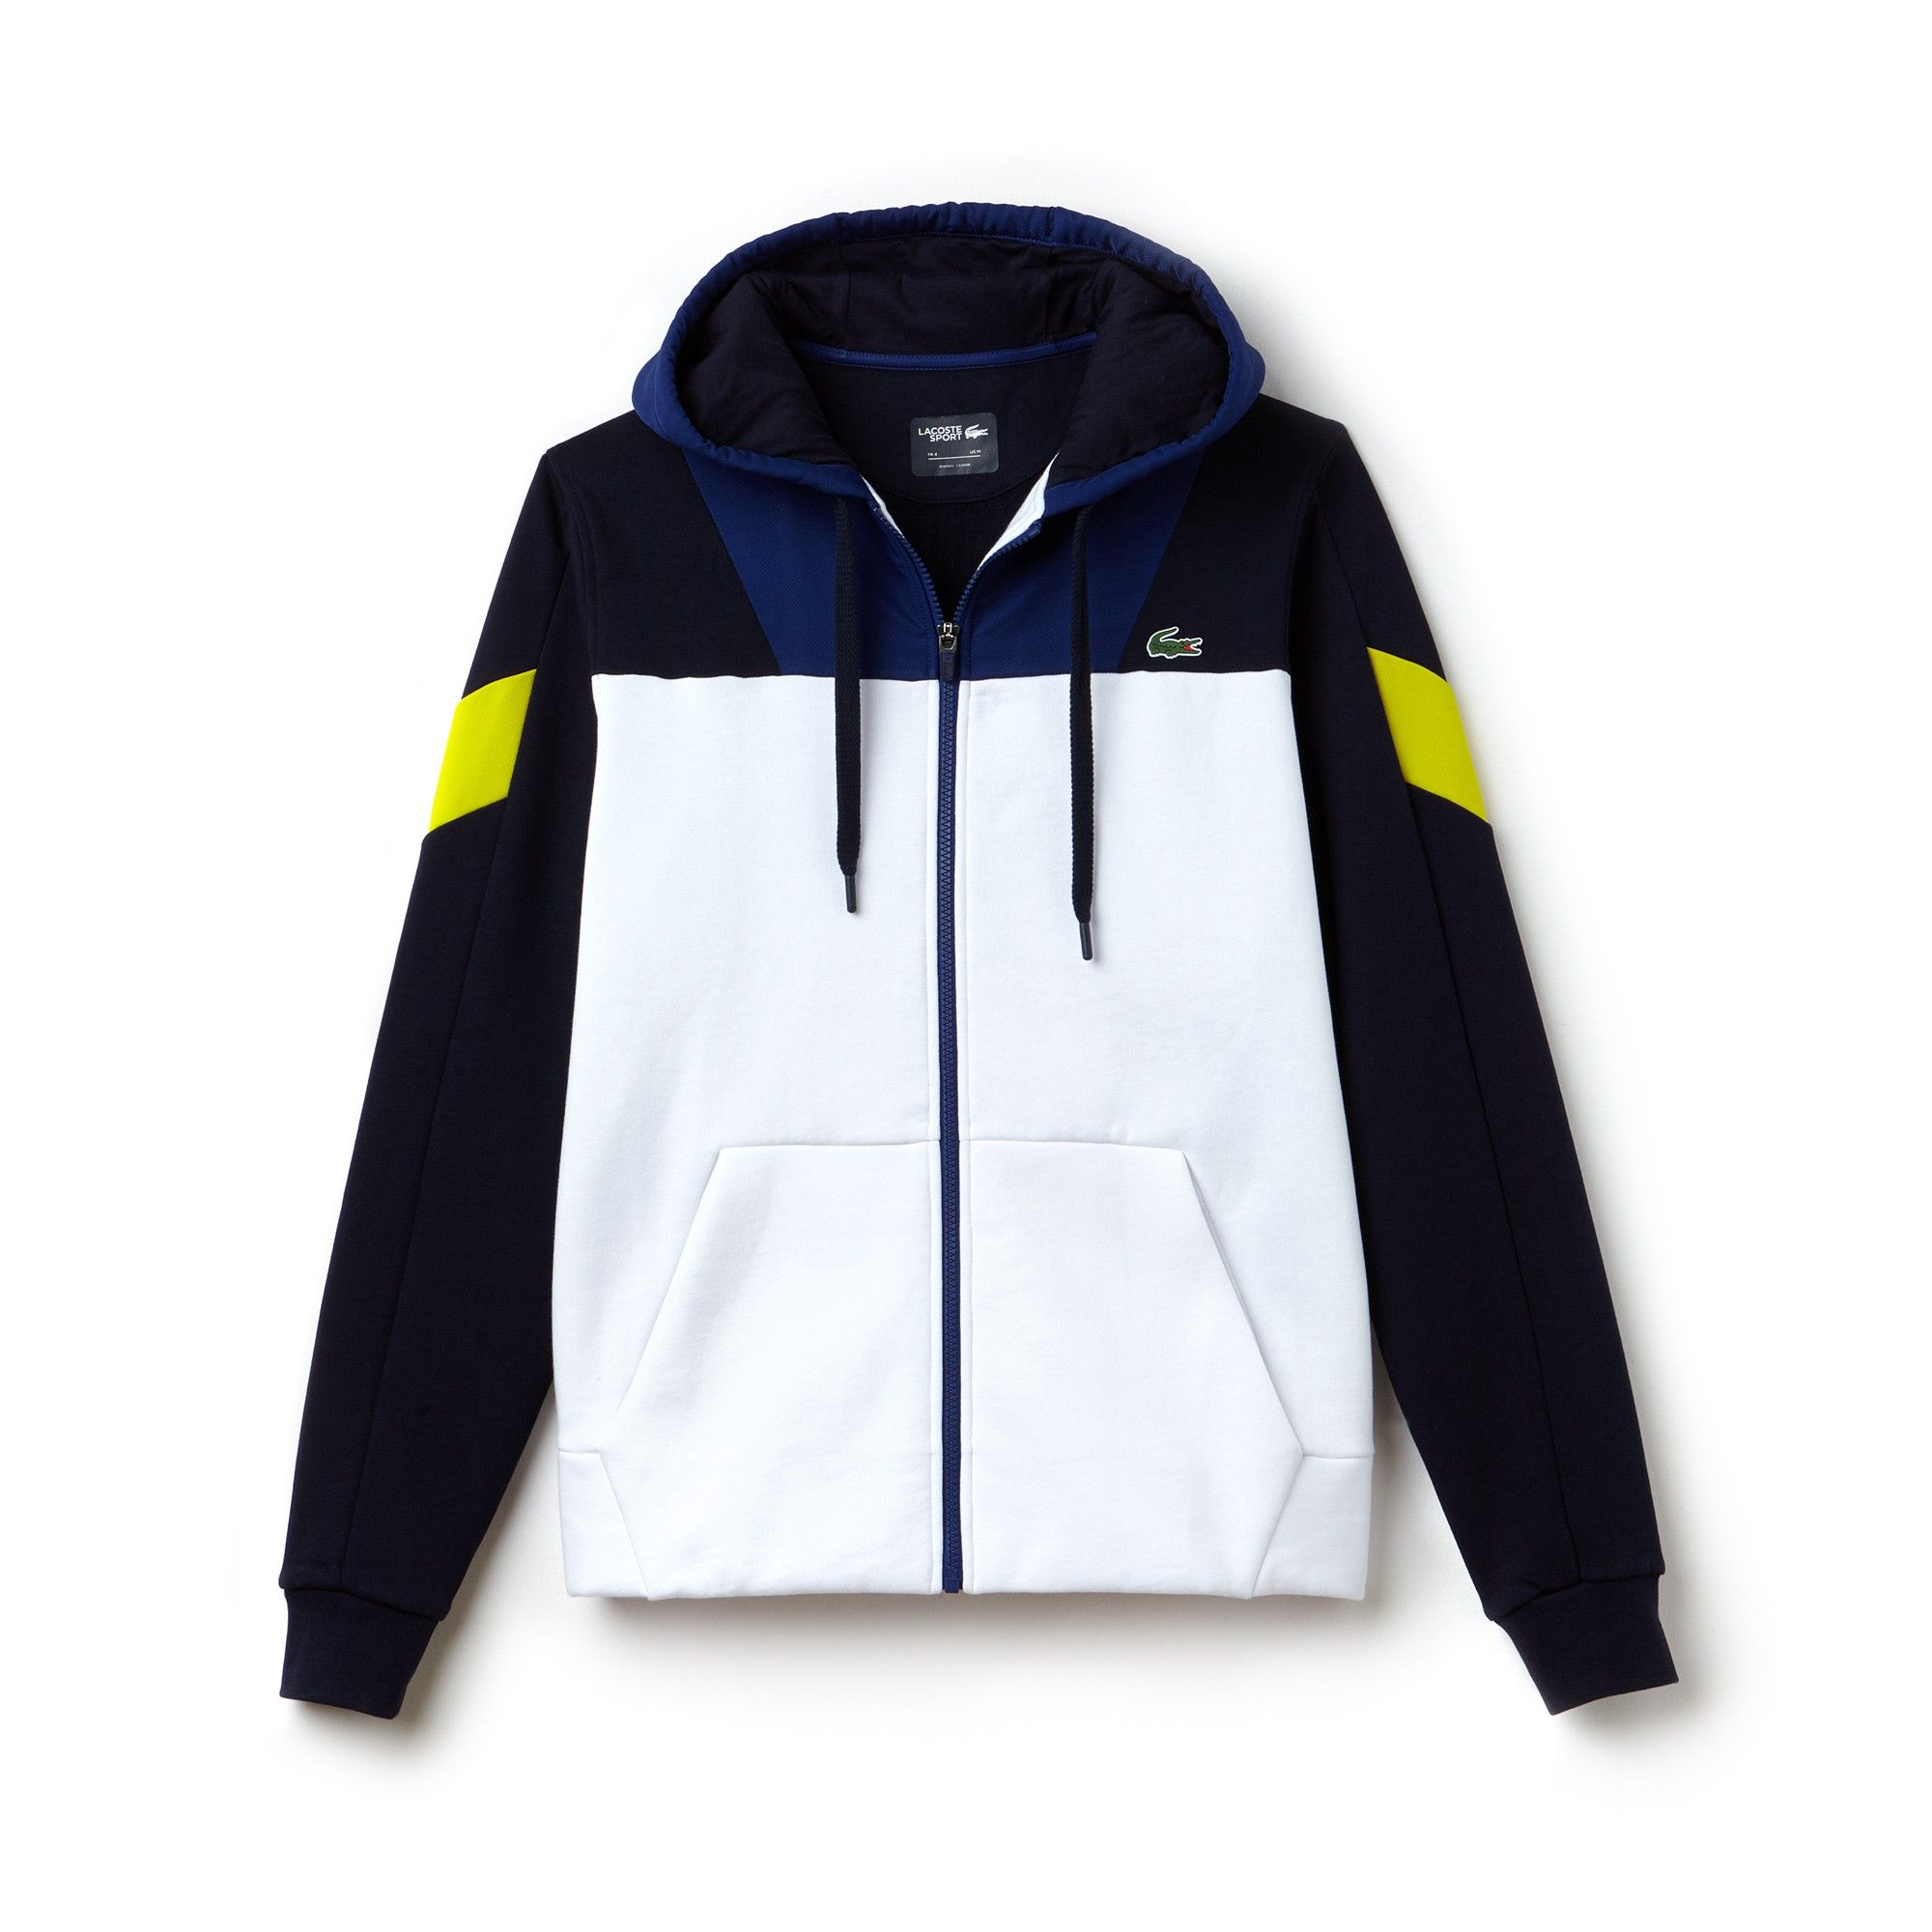 126c126147 Lacoste Men's Sport Tennis Colorblock Bi-Material Zip Sweatshirt -  White/Navy Blue-Ocean-Sod XL